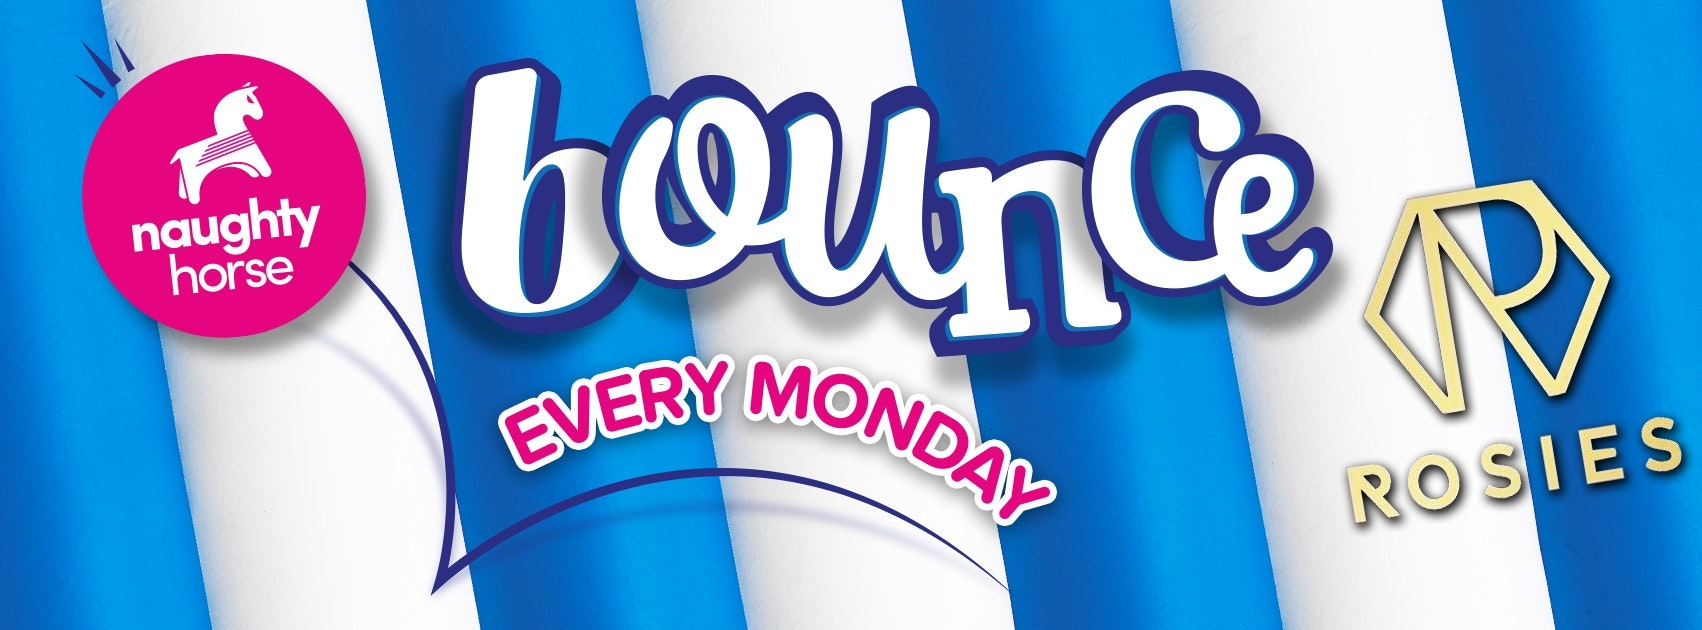 Bounce – Mondays at Rosies!